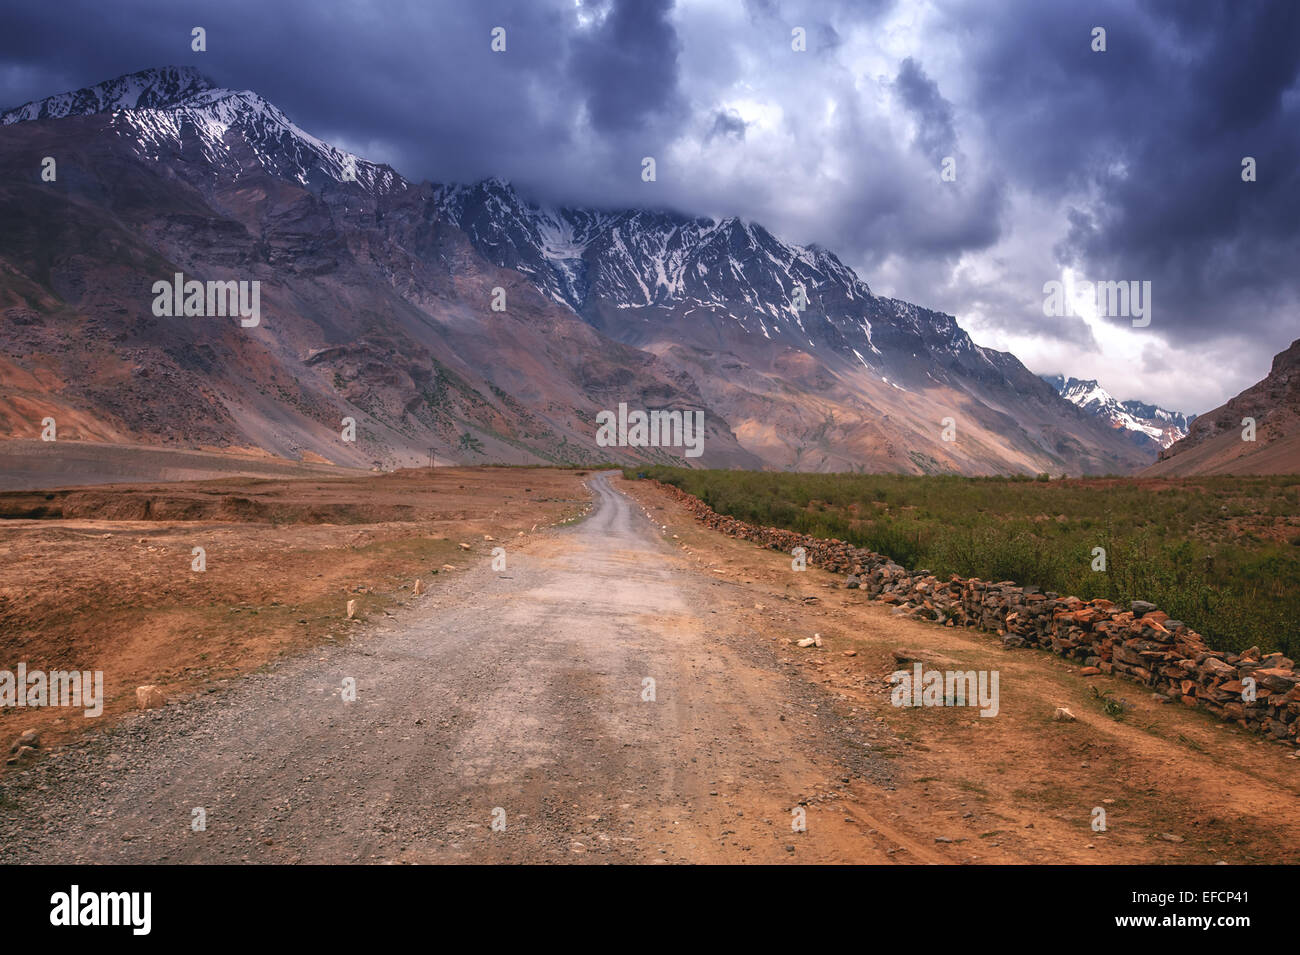 the road in himalayas mountain - Stock Image